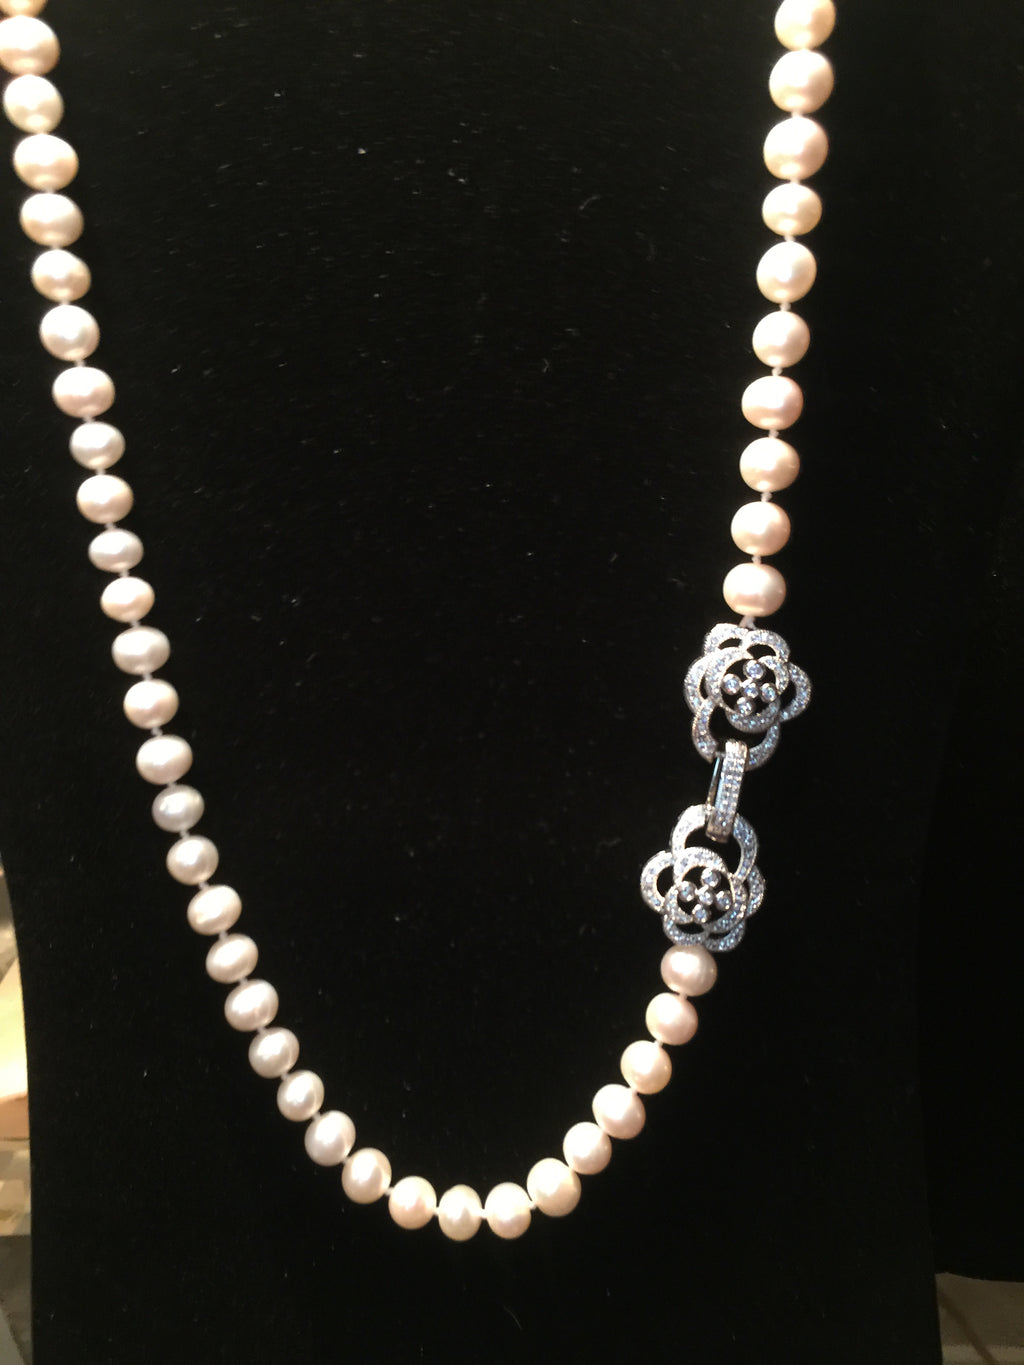 Pearl Necklace - Round and Creamy High Luster Pearls with Zircon Clasp